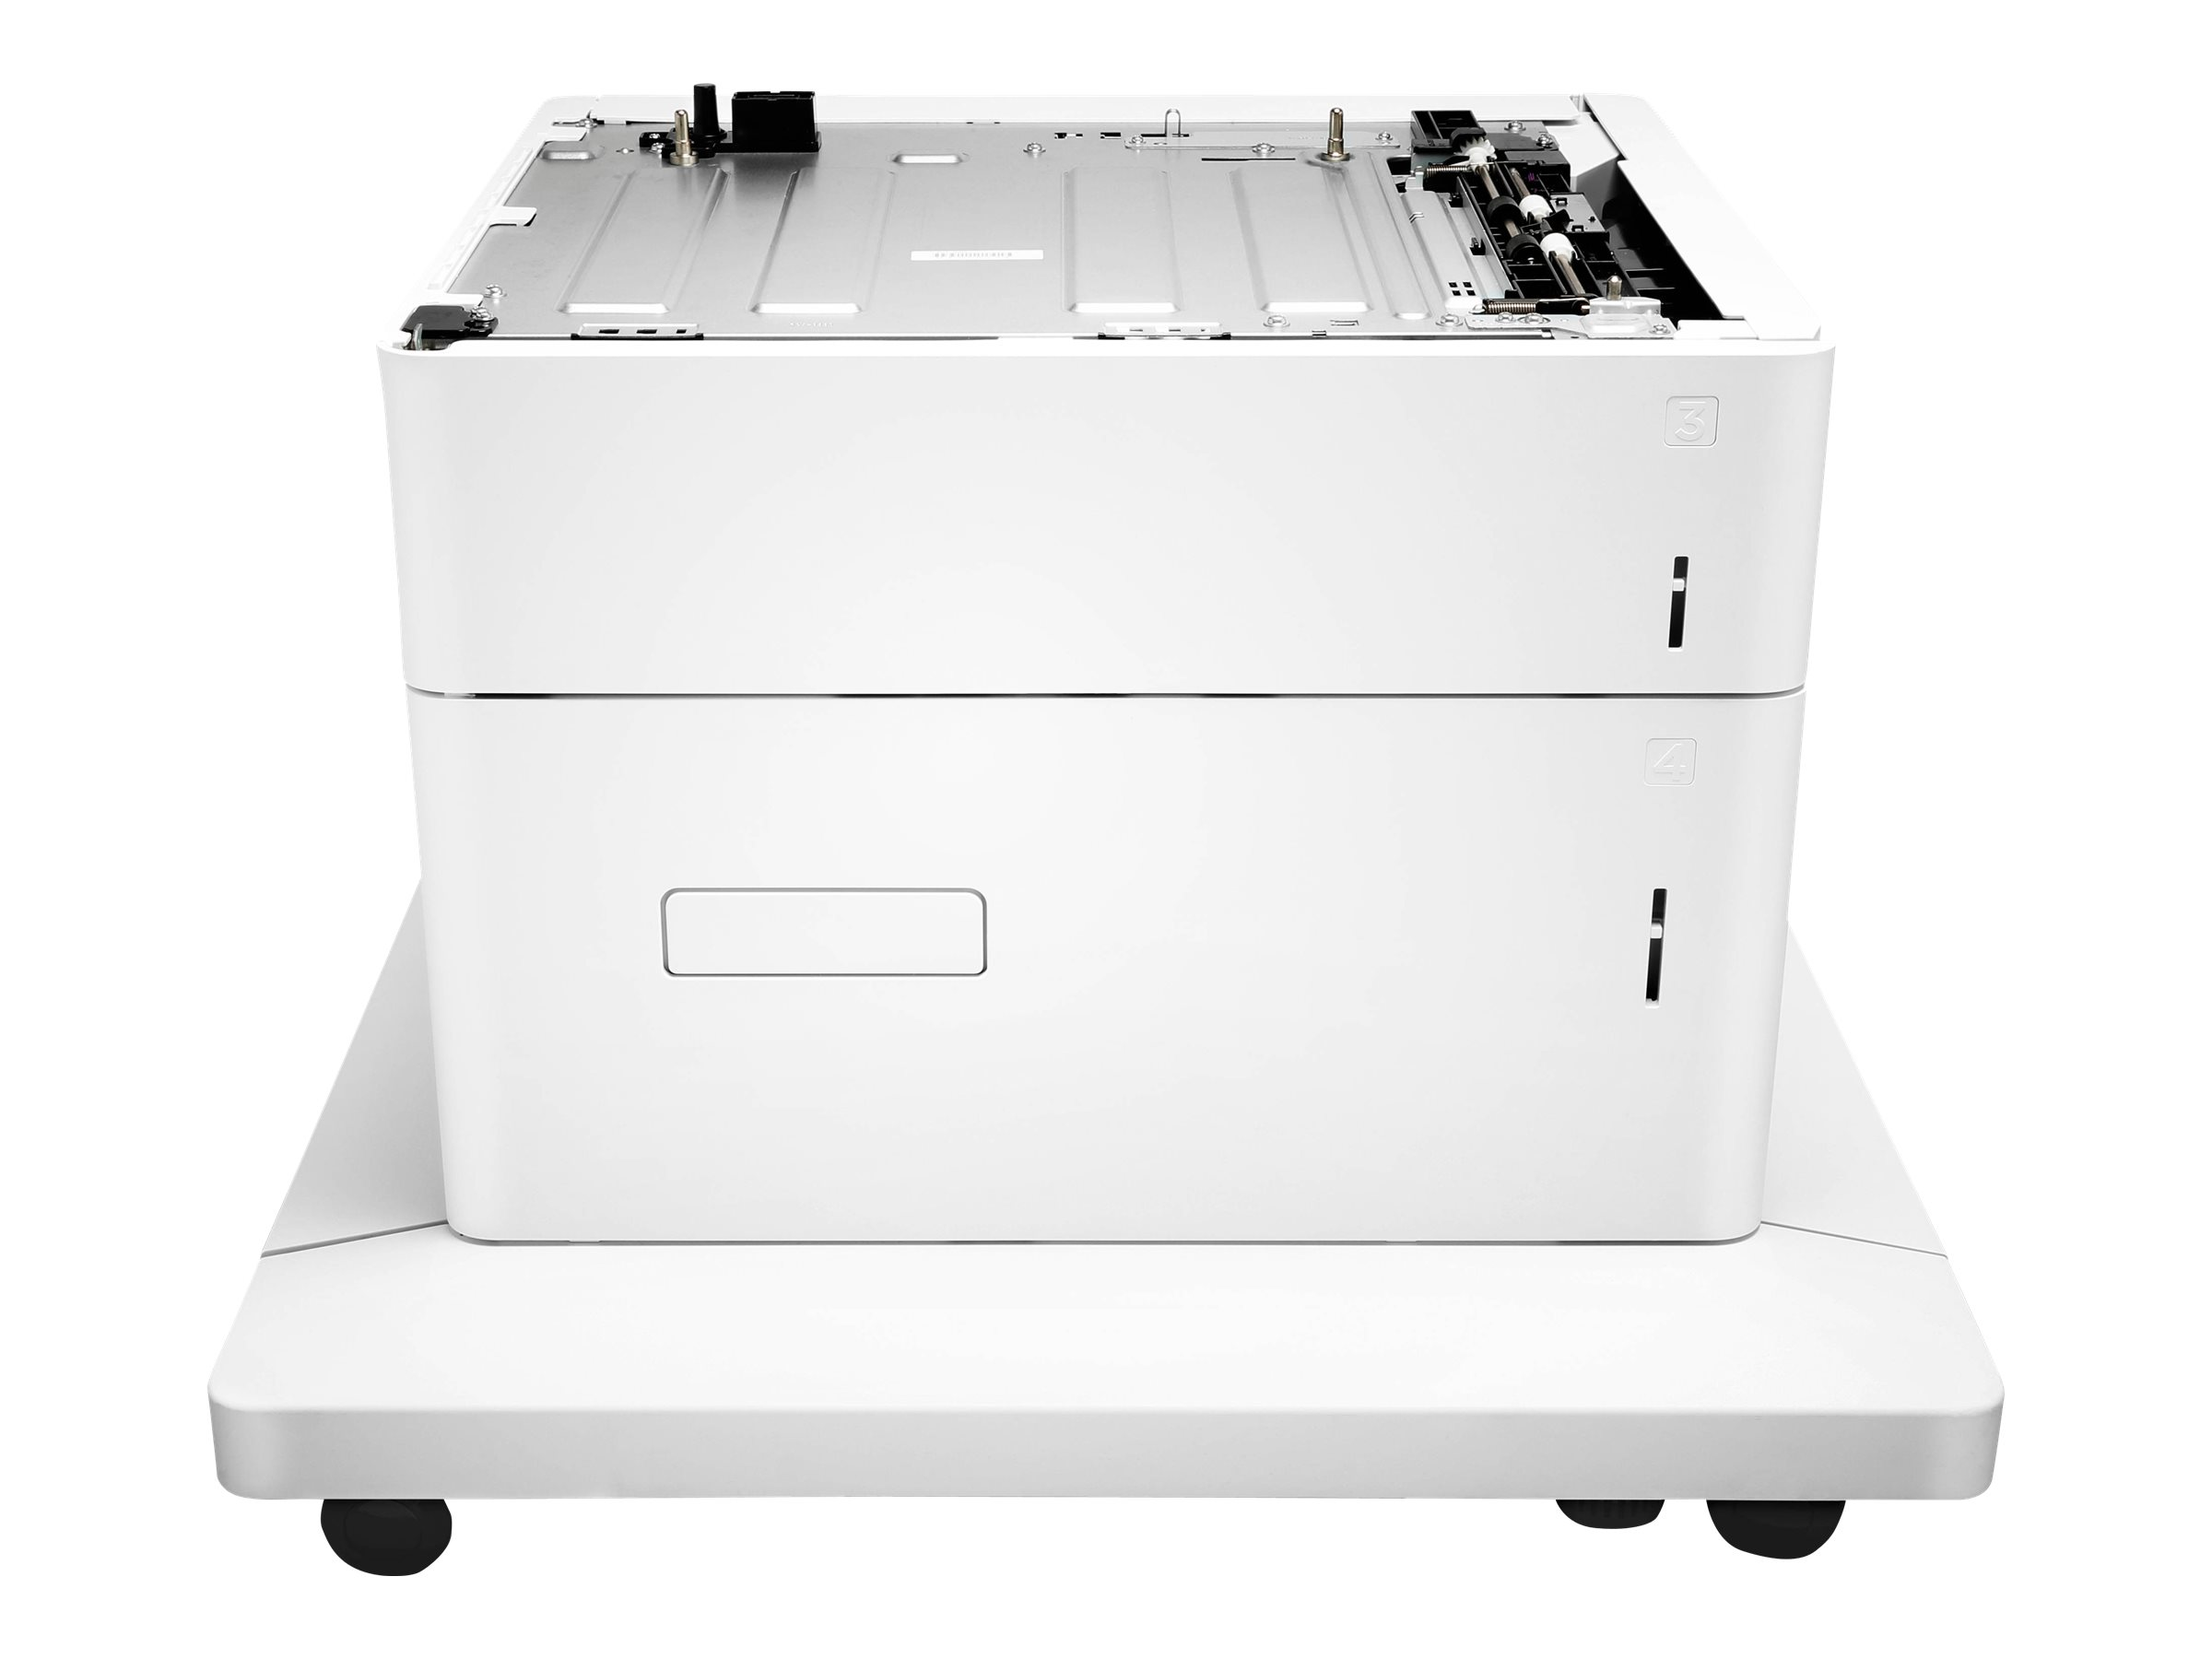 HP Paper Feeder and Stand - Druckerbasis mit Medienzuführung - 2550 Blätter in 2 Schubladen (Trays) - für Color LaserJet Enterprise M652, M653; LaserJet Enterprise Flow MFP M681, MFP M682